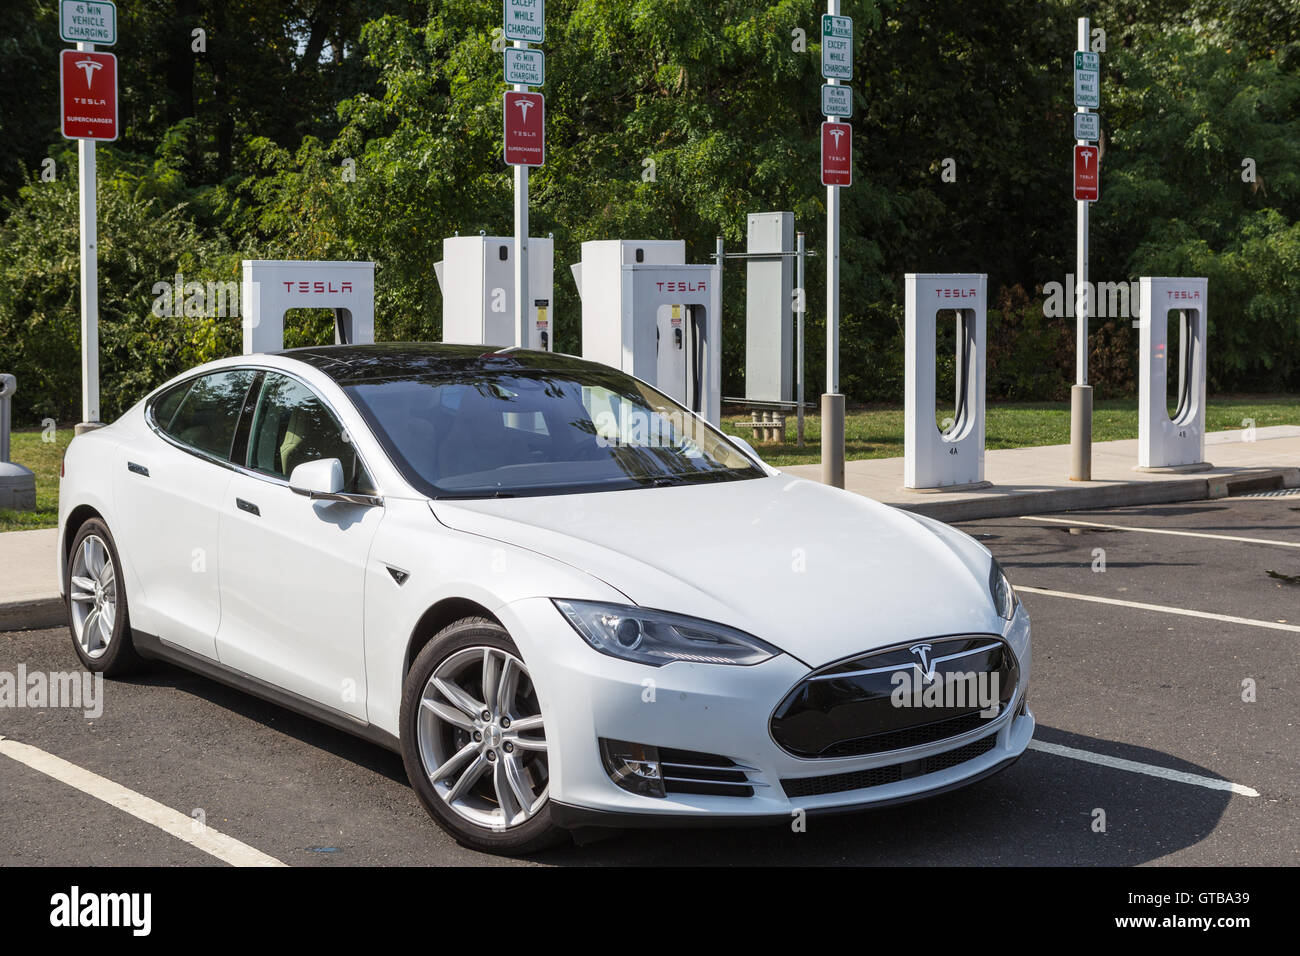 A Tesla Model S automobile gets a charge from a Tesla supercharger charging station at a highway rest stop. - Stock Image